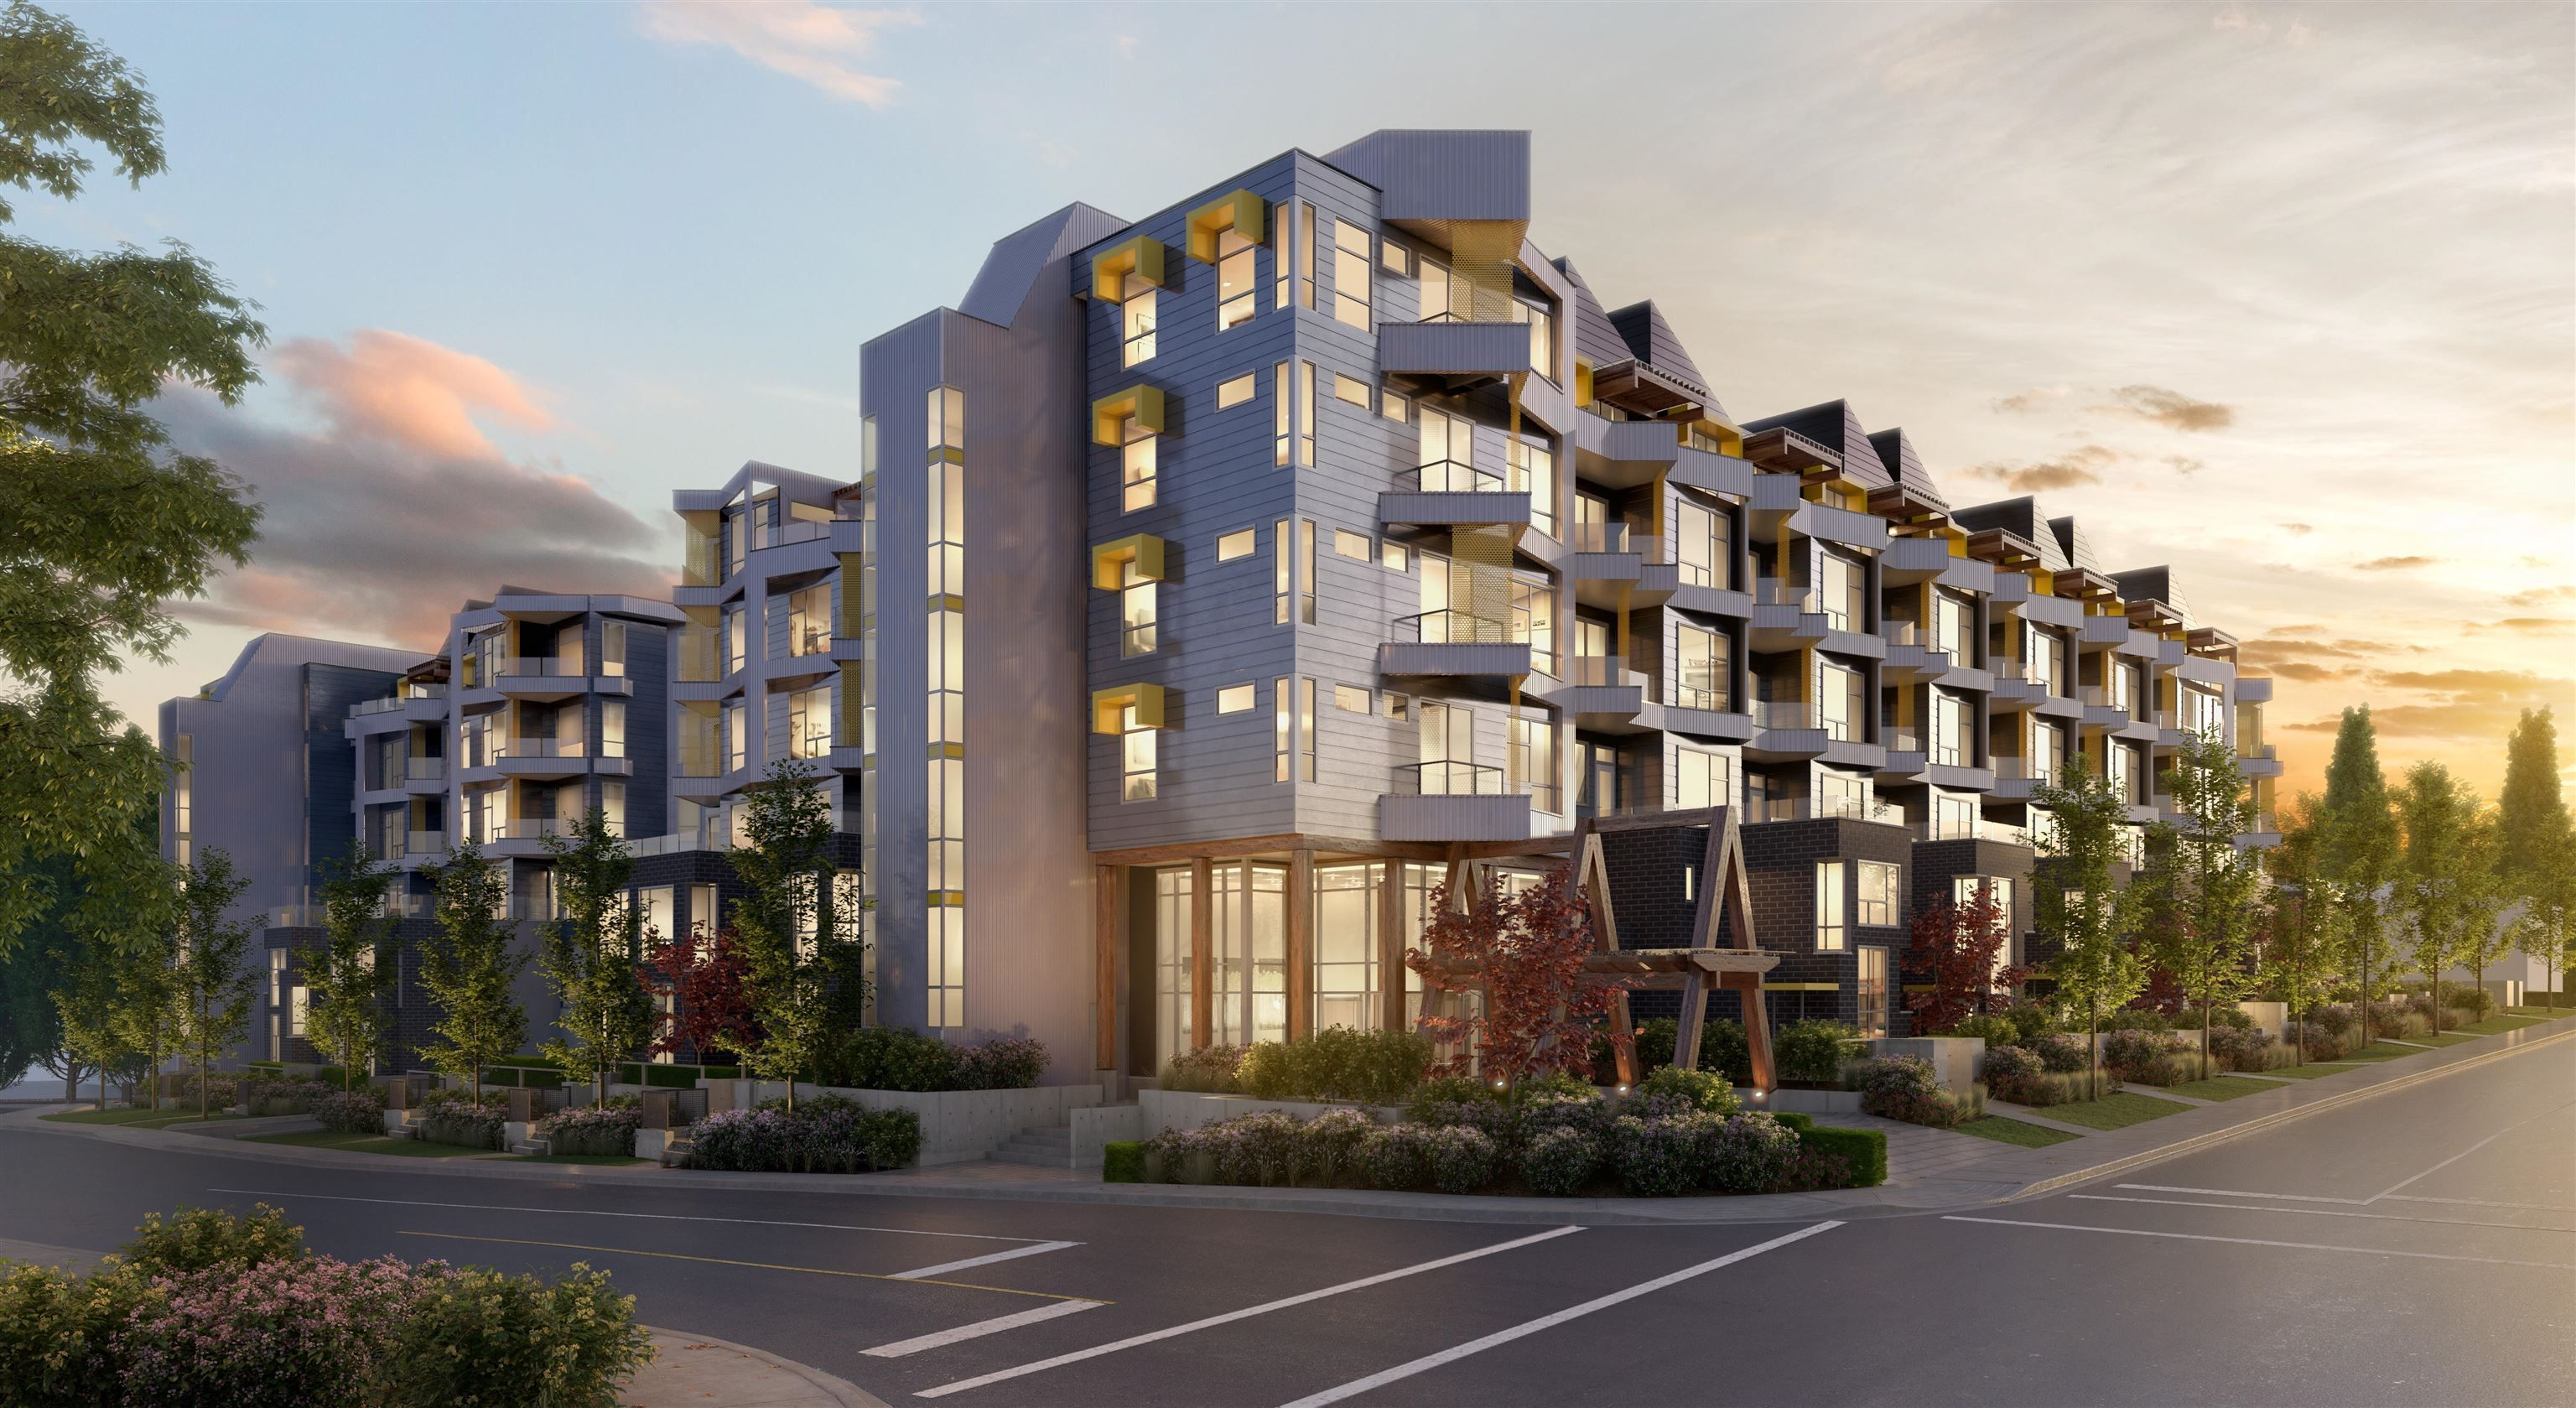 """Main Photo: 506 32838 LANDEAU Place in Abbotsford: Central Abbotsford Condo for sale in """"Court"""" : MLS®# R2625391"""